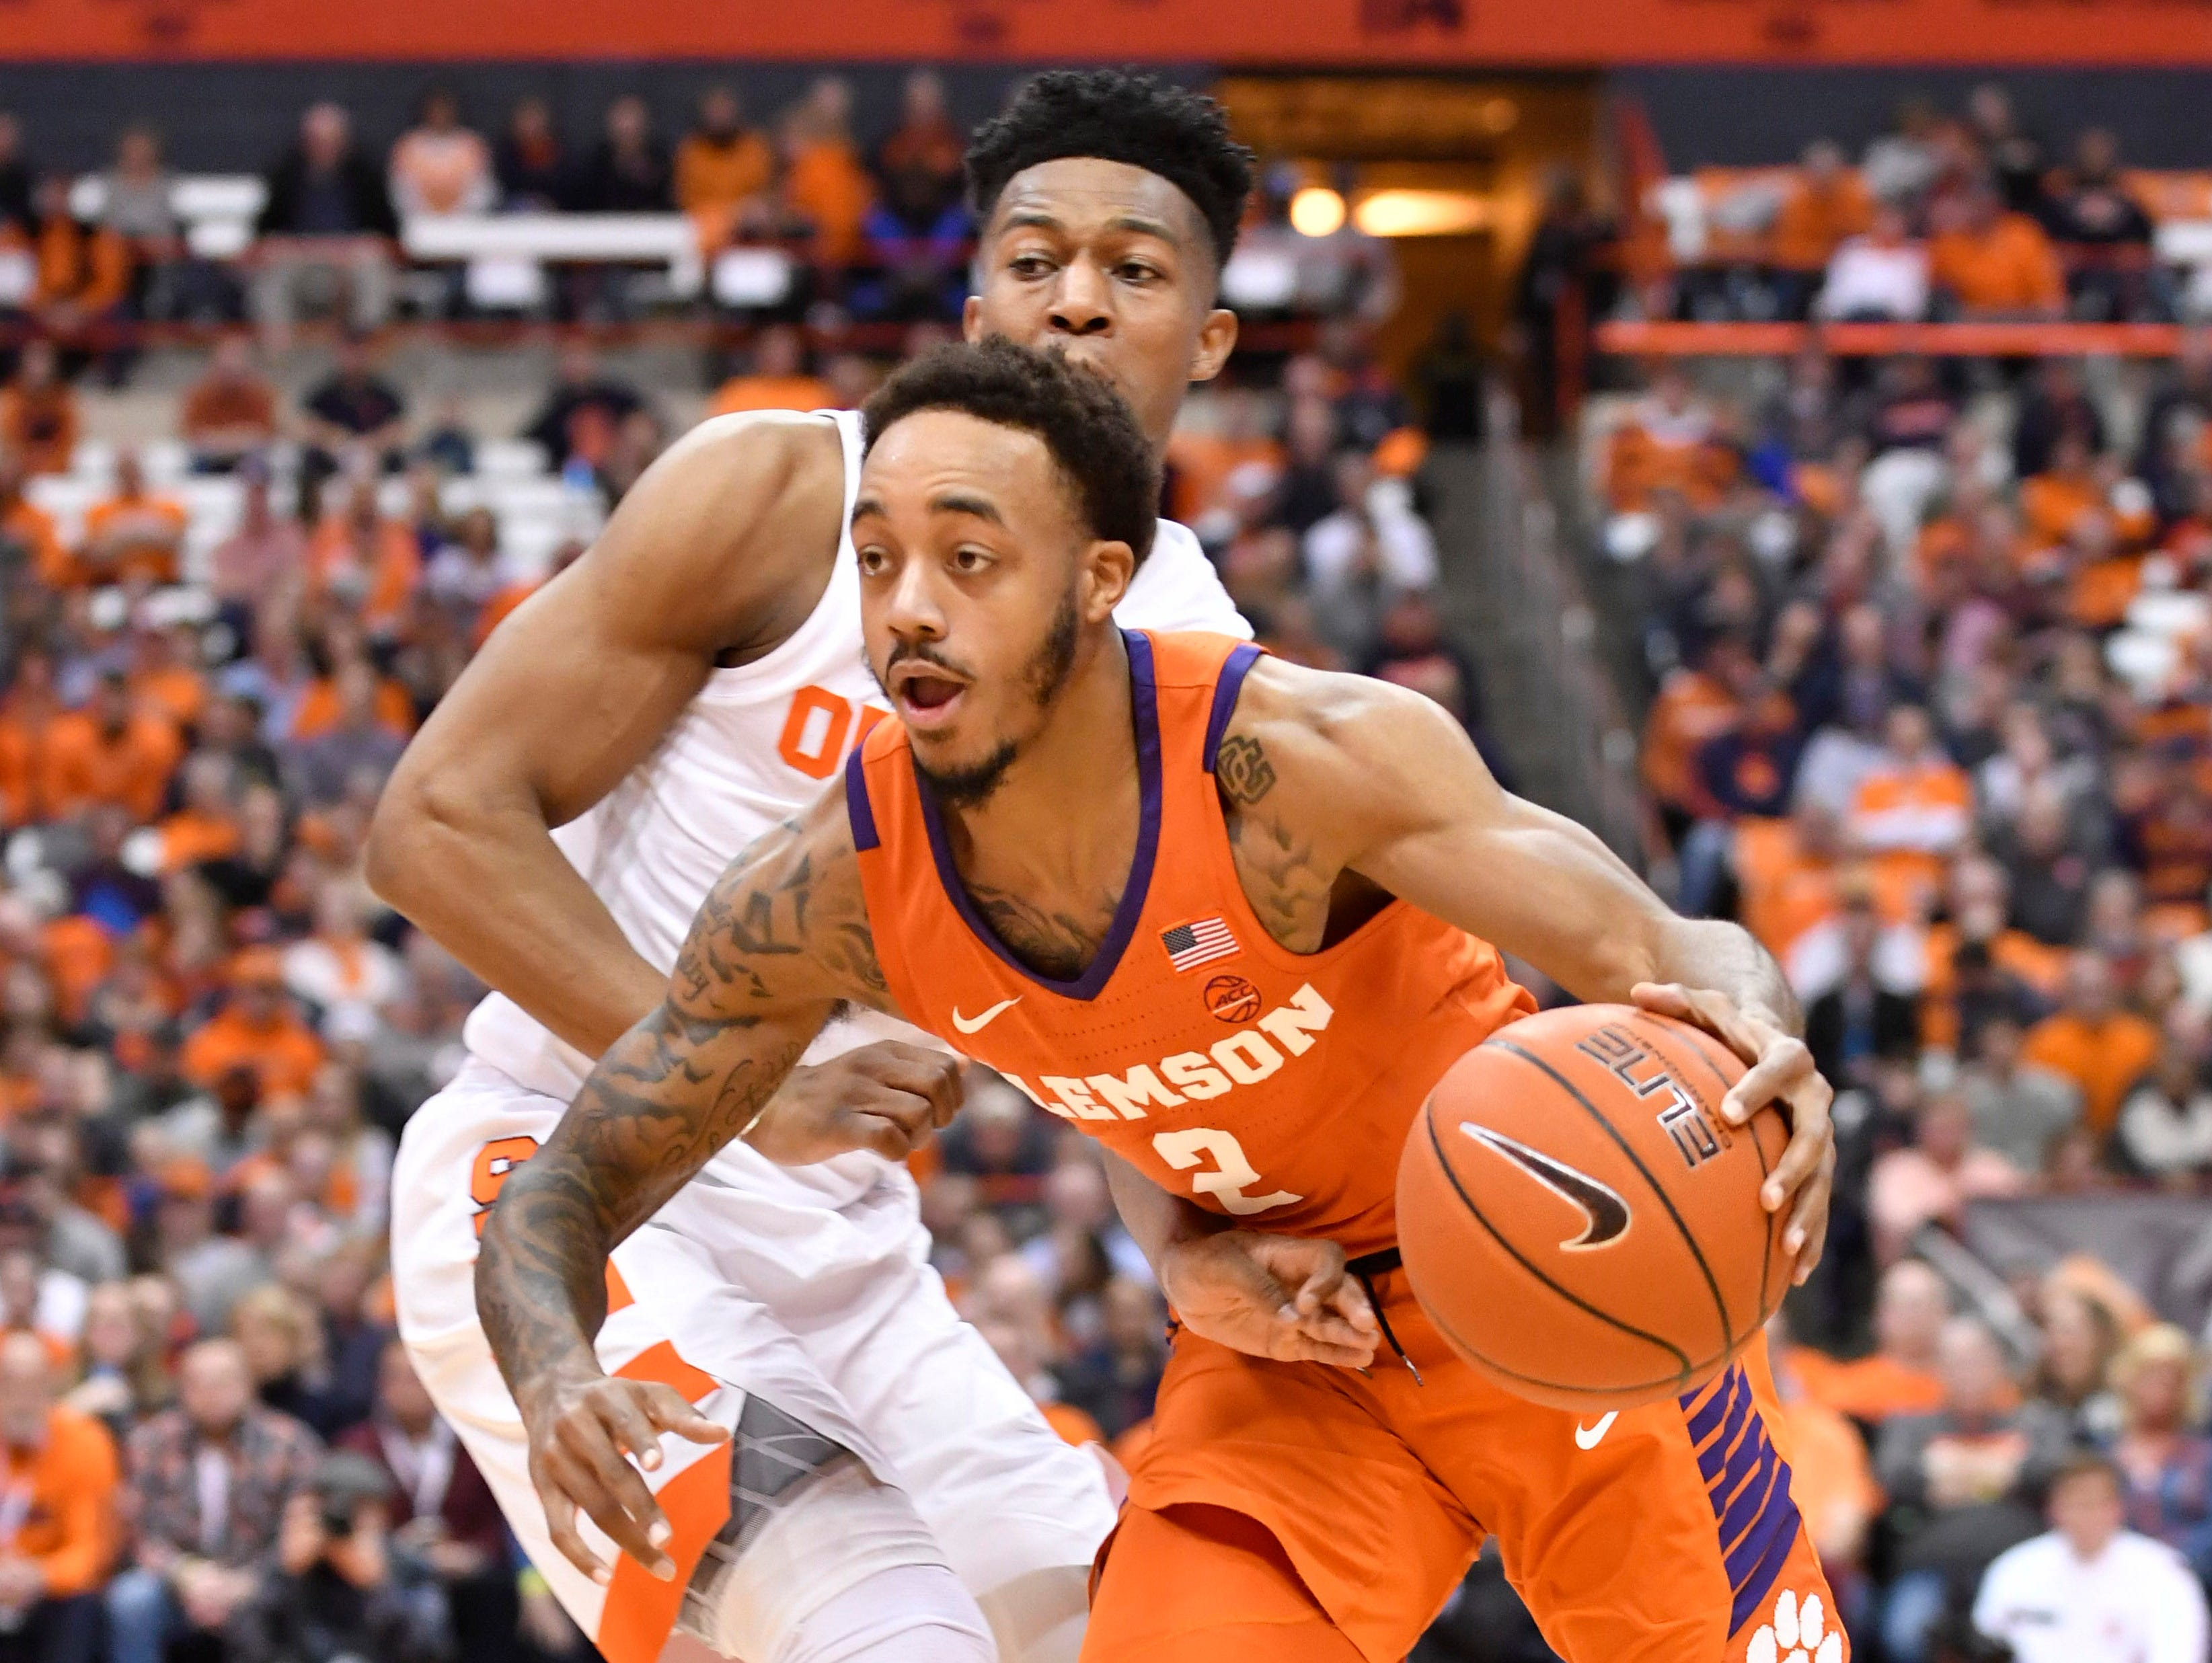 Jan 9, 2019; Syracuse, NY, USA; Clemson Tigers guard Marcquise Reed (2) drives the ball past Syracuse Orange guard Tyus Battle (25) during the first half at the Carrier Dome.